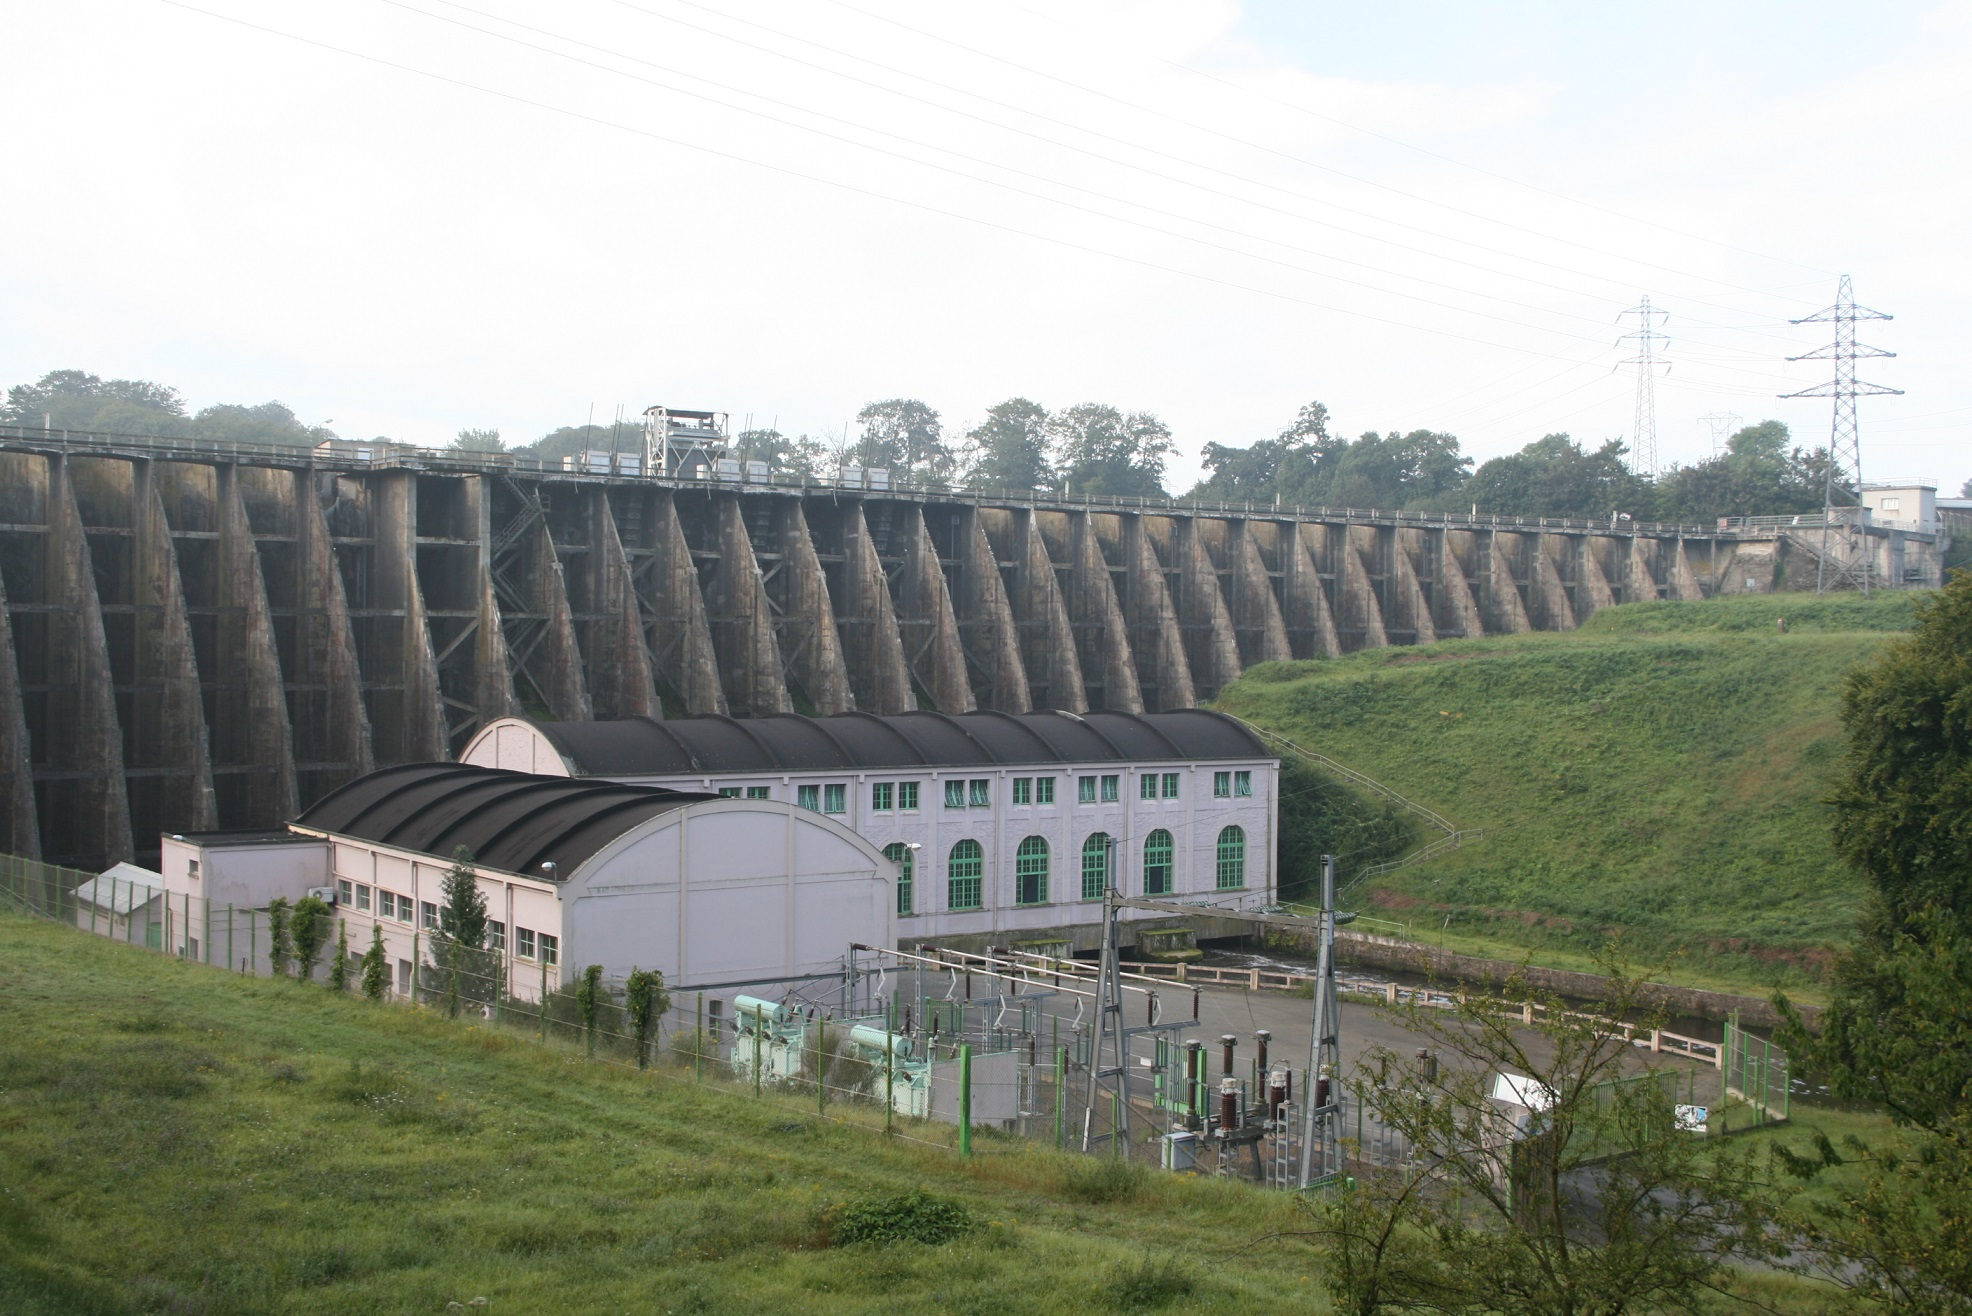 The days of Dam Vezin are numbered – this is going to be the biggest dam removal project in Europe © JP Doron